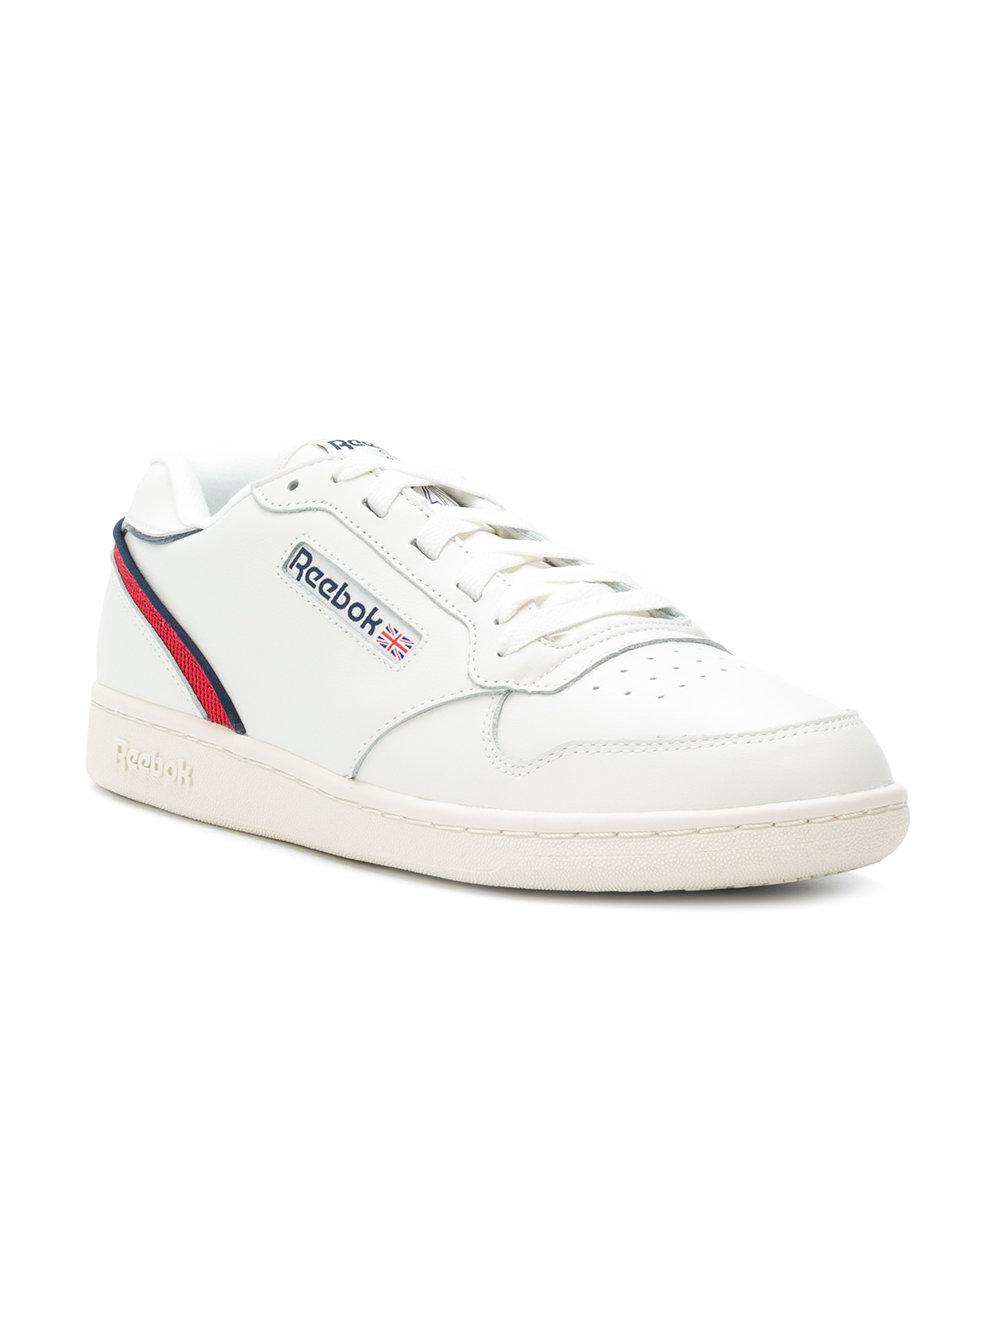 Reebok - White Act 300 Sneakers for Men - Lyst. View fullscreen f42c95fbd